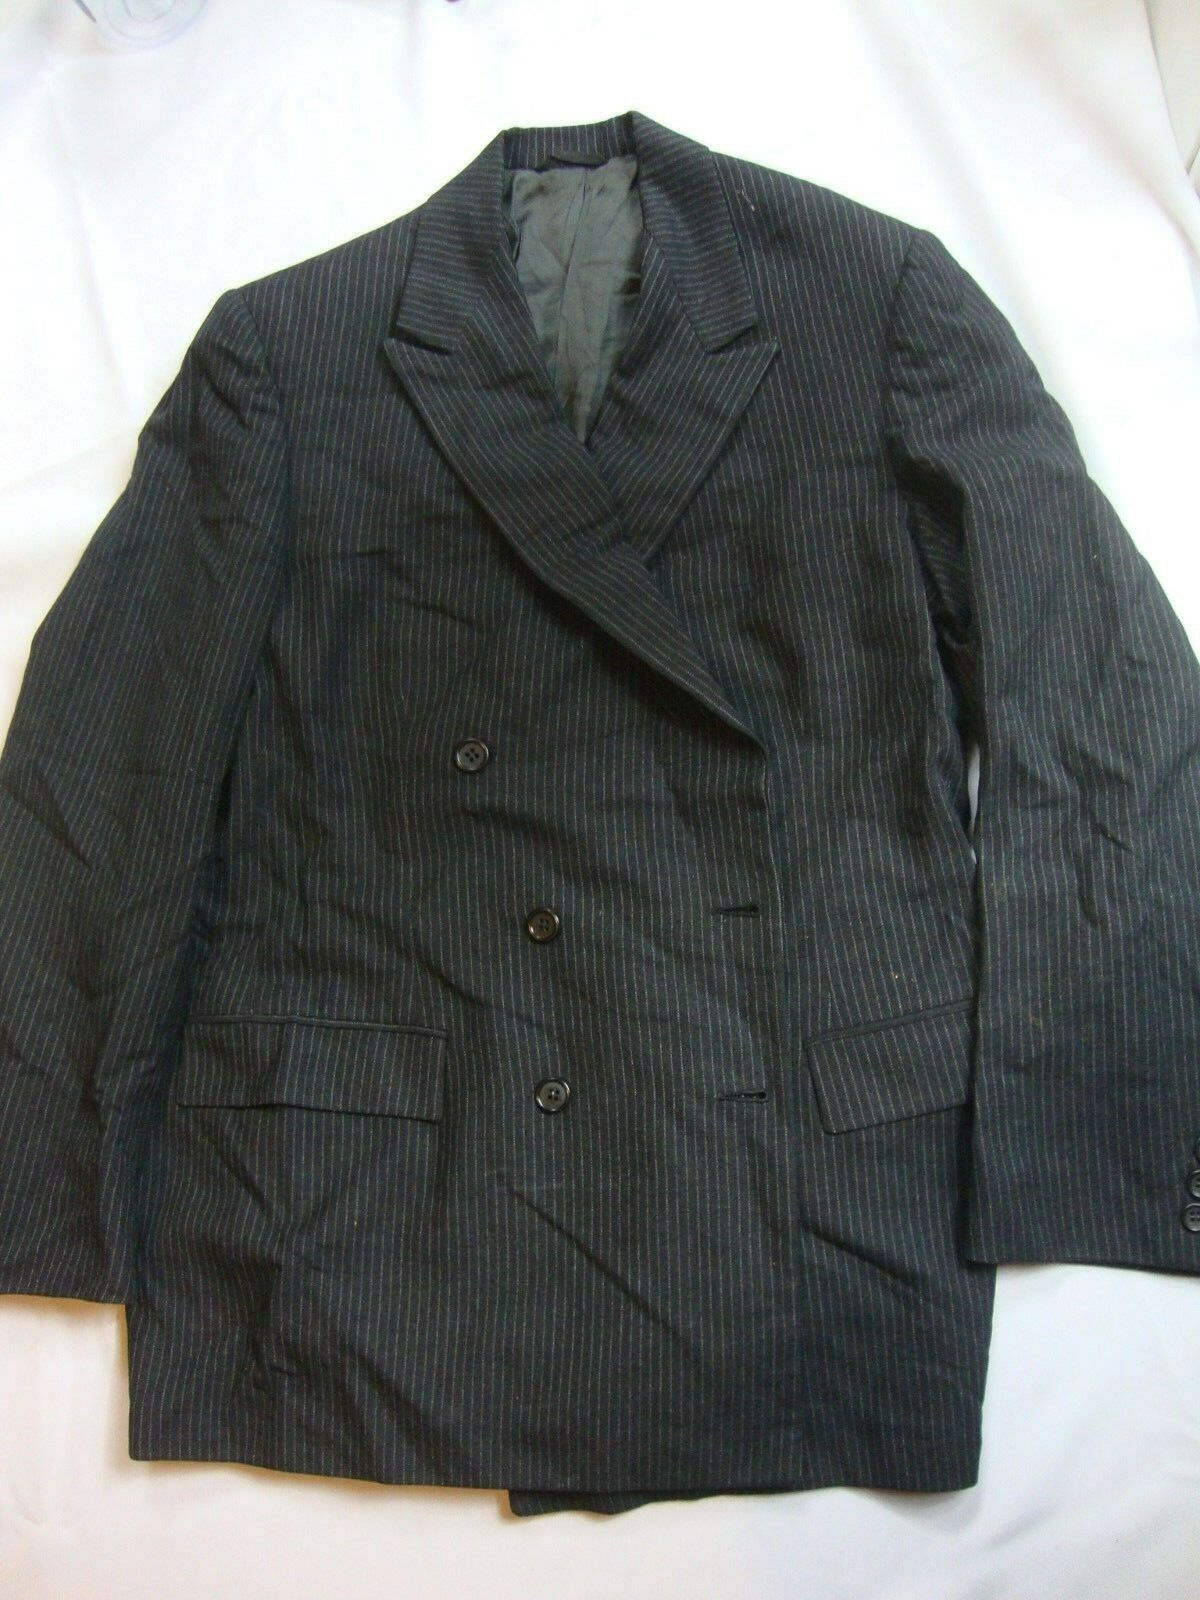 Made To Order Department Dunhill Tailors New York Size Medium Large Men's Blazer